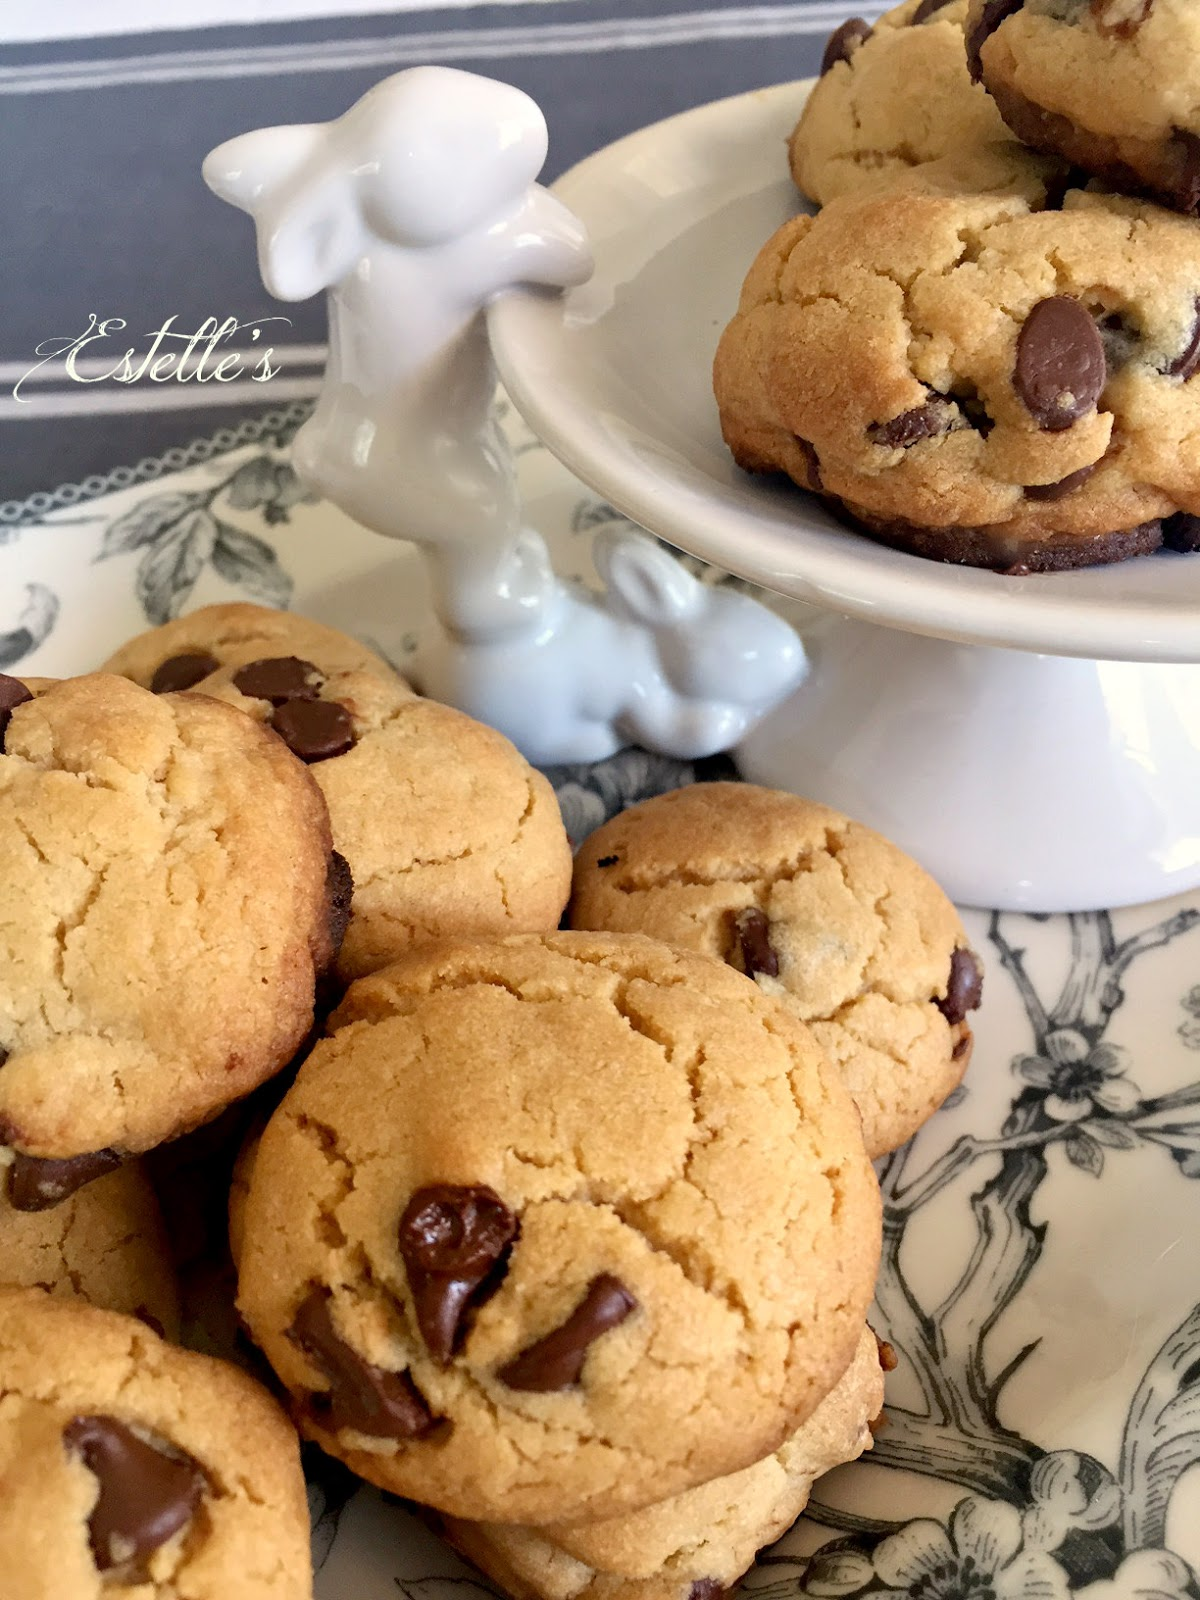 Estelle's: BISQUICK CHOCOLATE CHIP COOKIES FOR THE EASTER BASKET